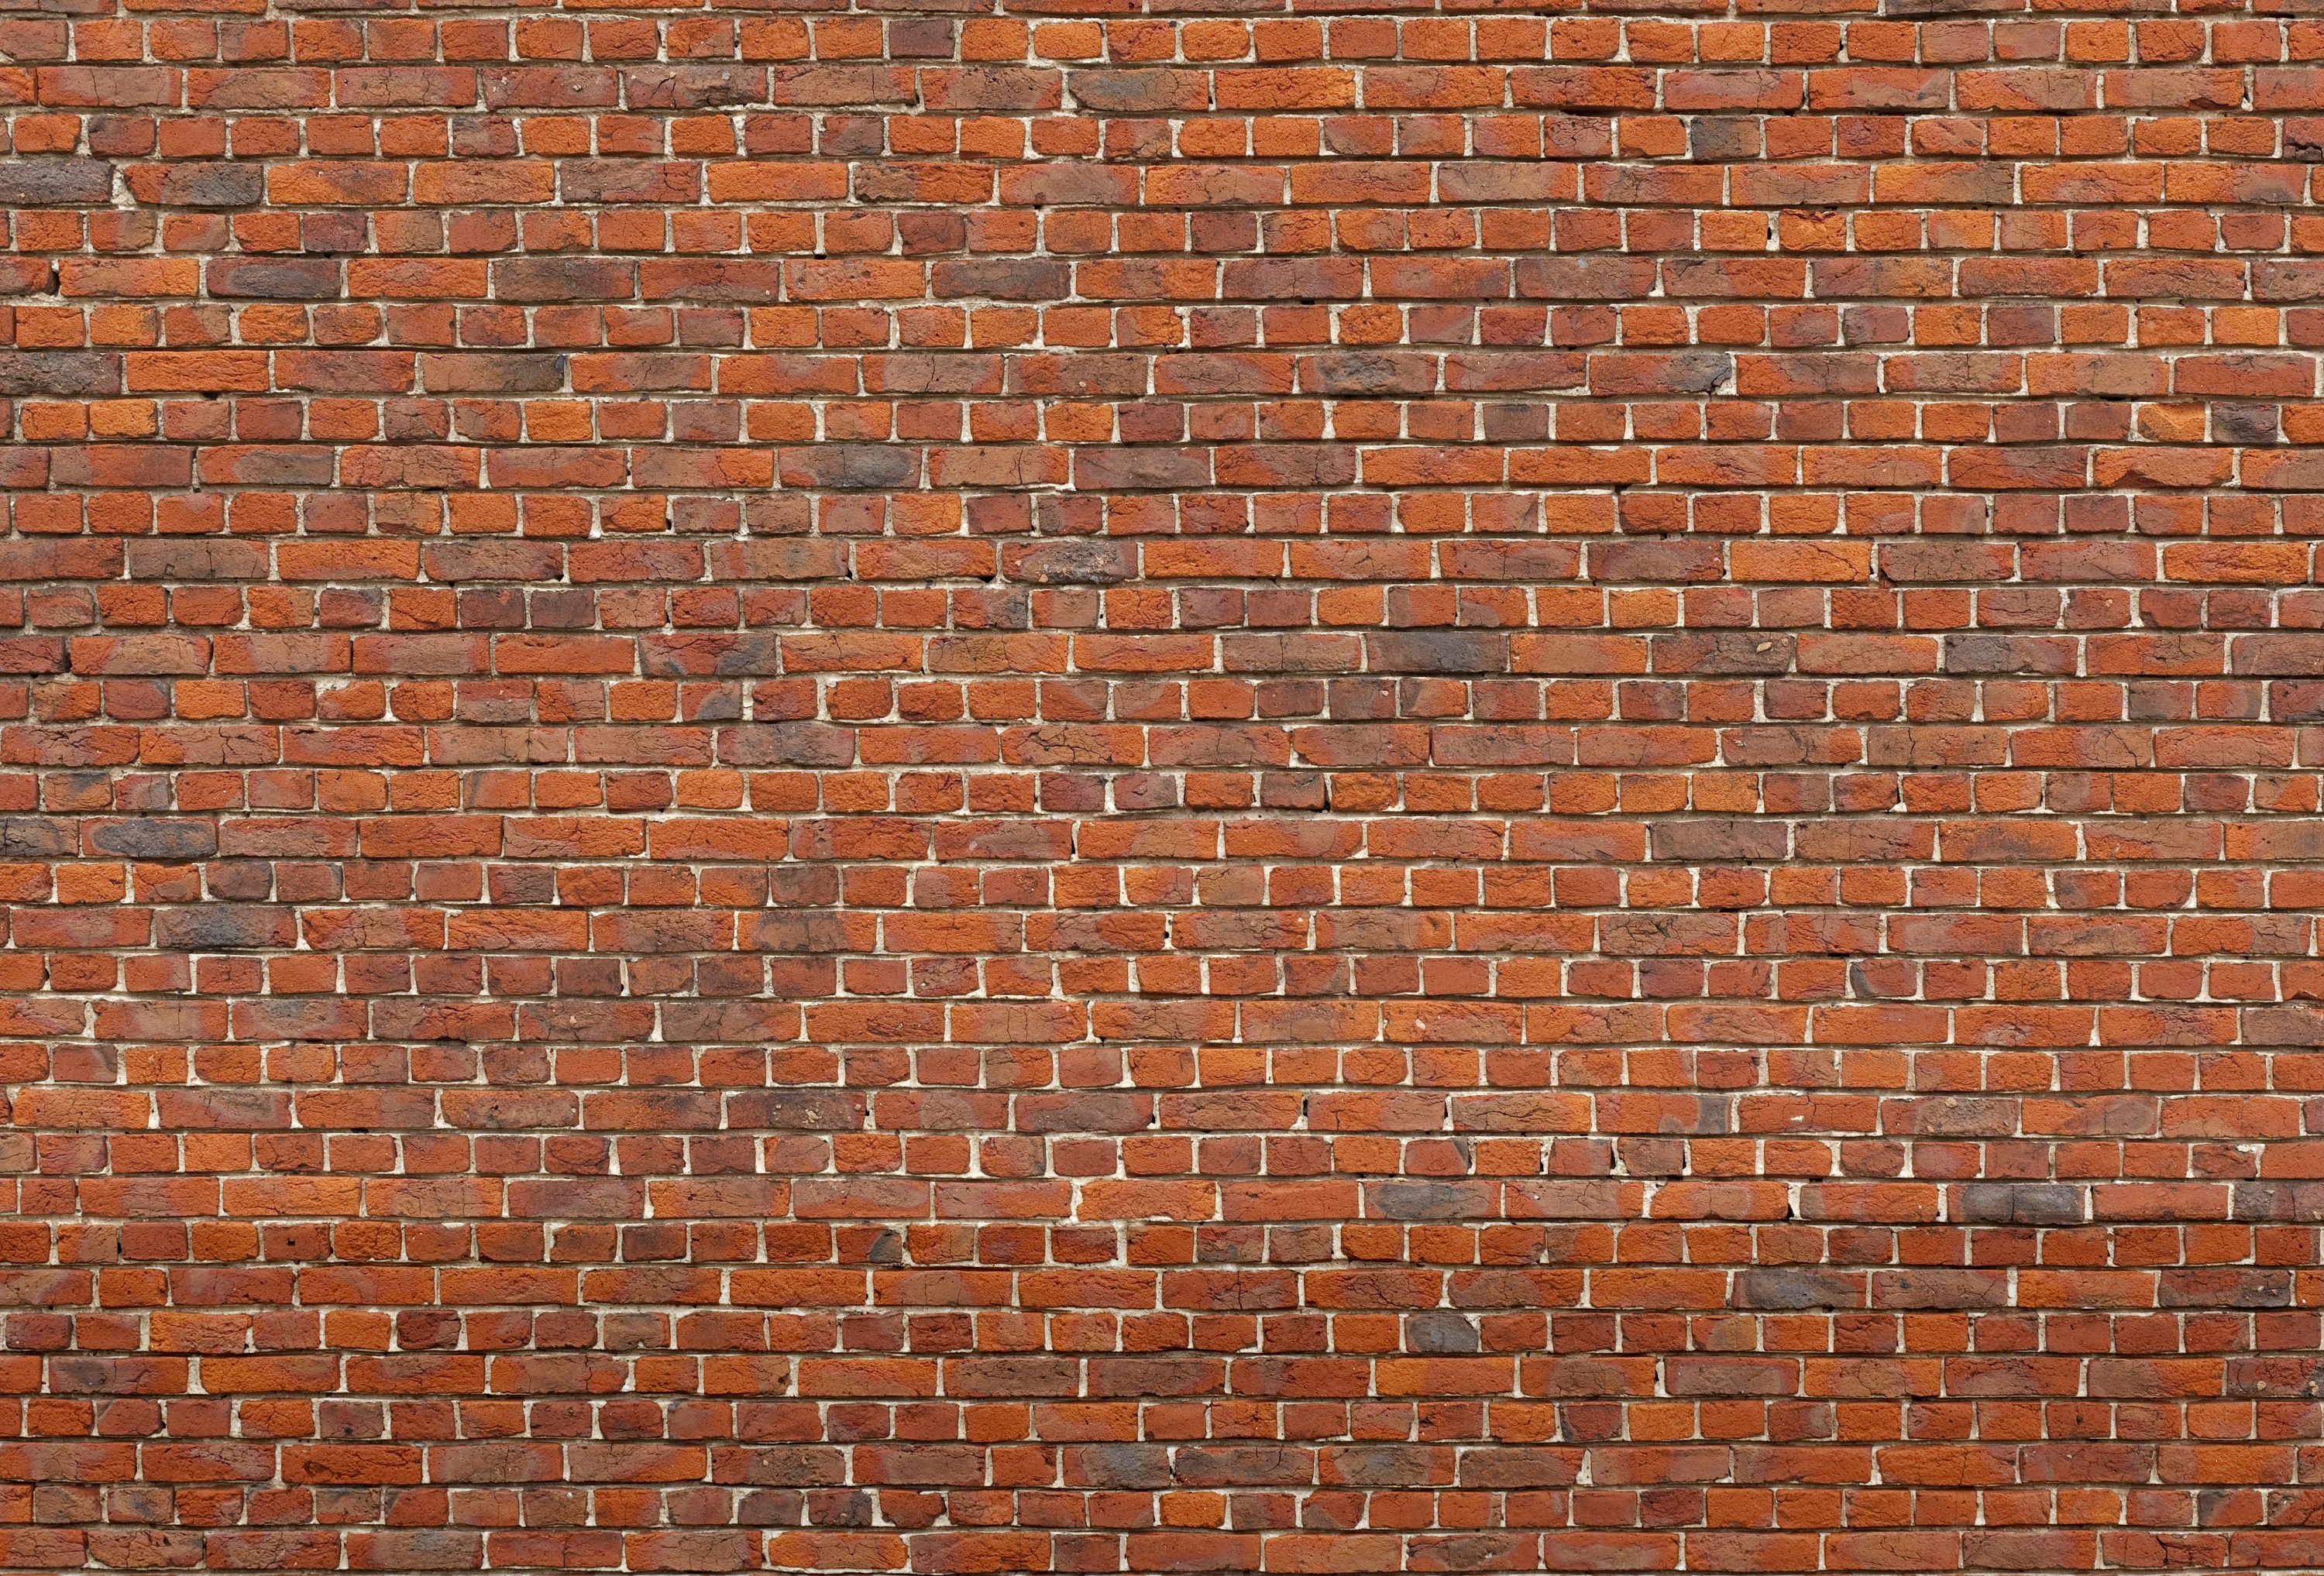 Brown Bricks Background